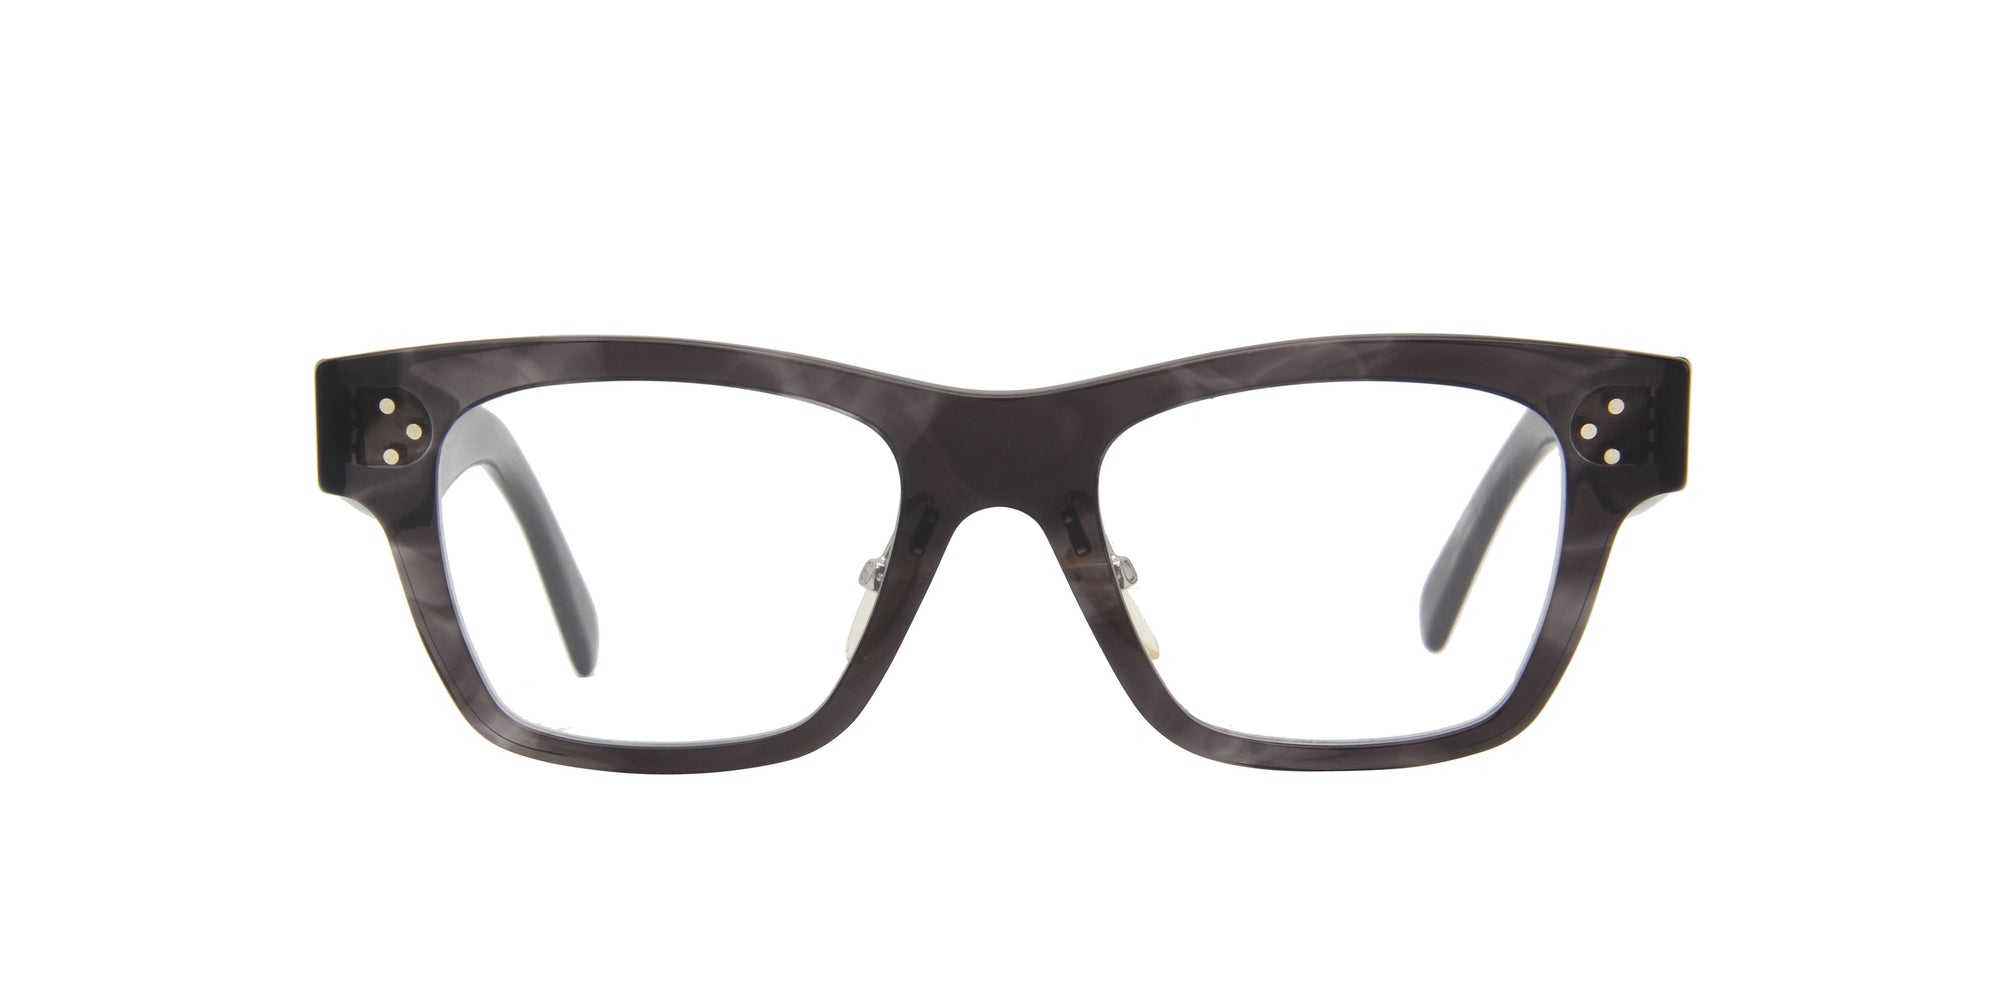 Celine - CL41428 Gray Rectangular Women Eyeglasses - 49mm-Eyeglasses-Designer Eyes